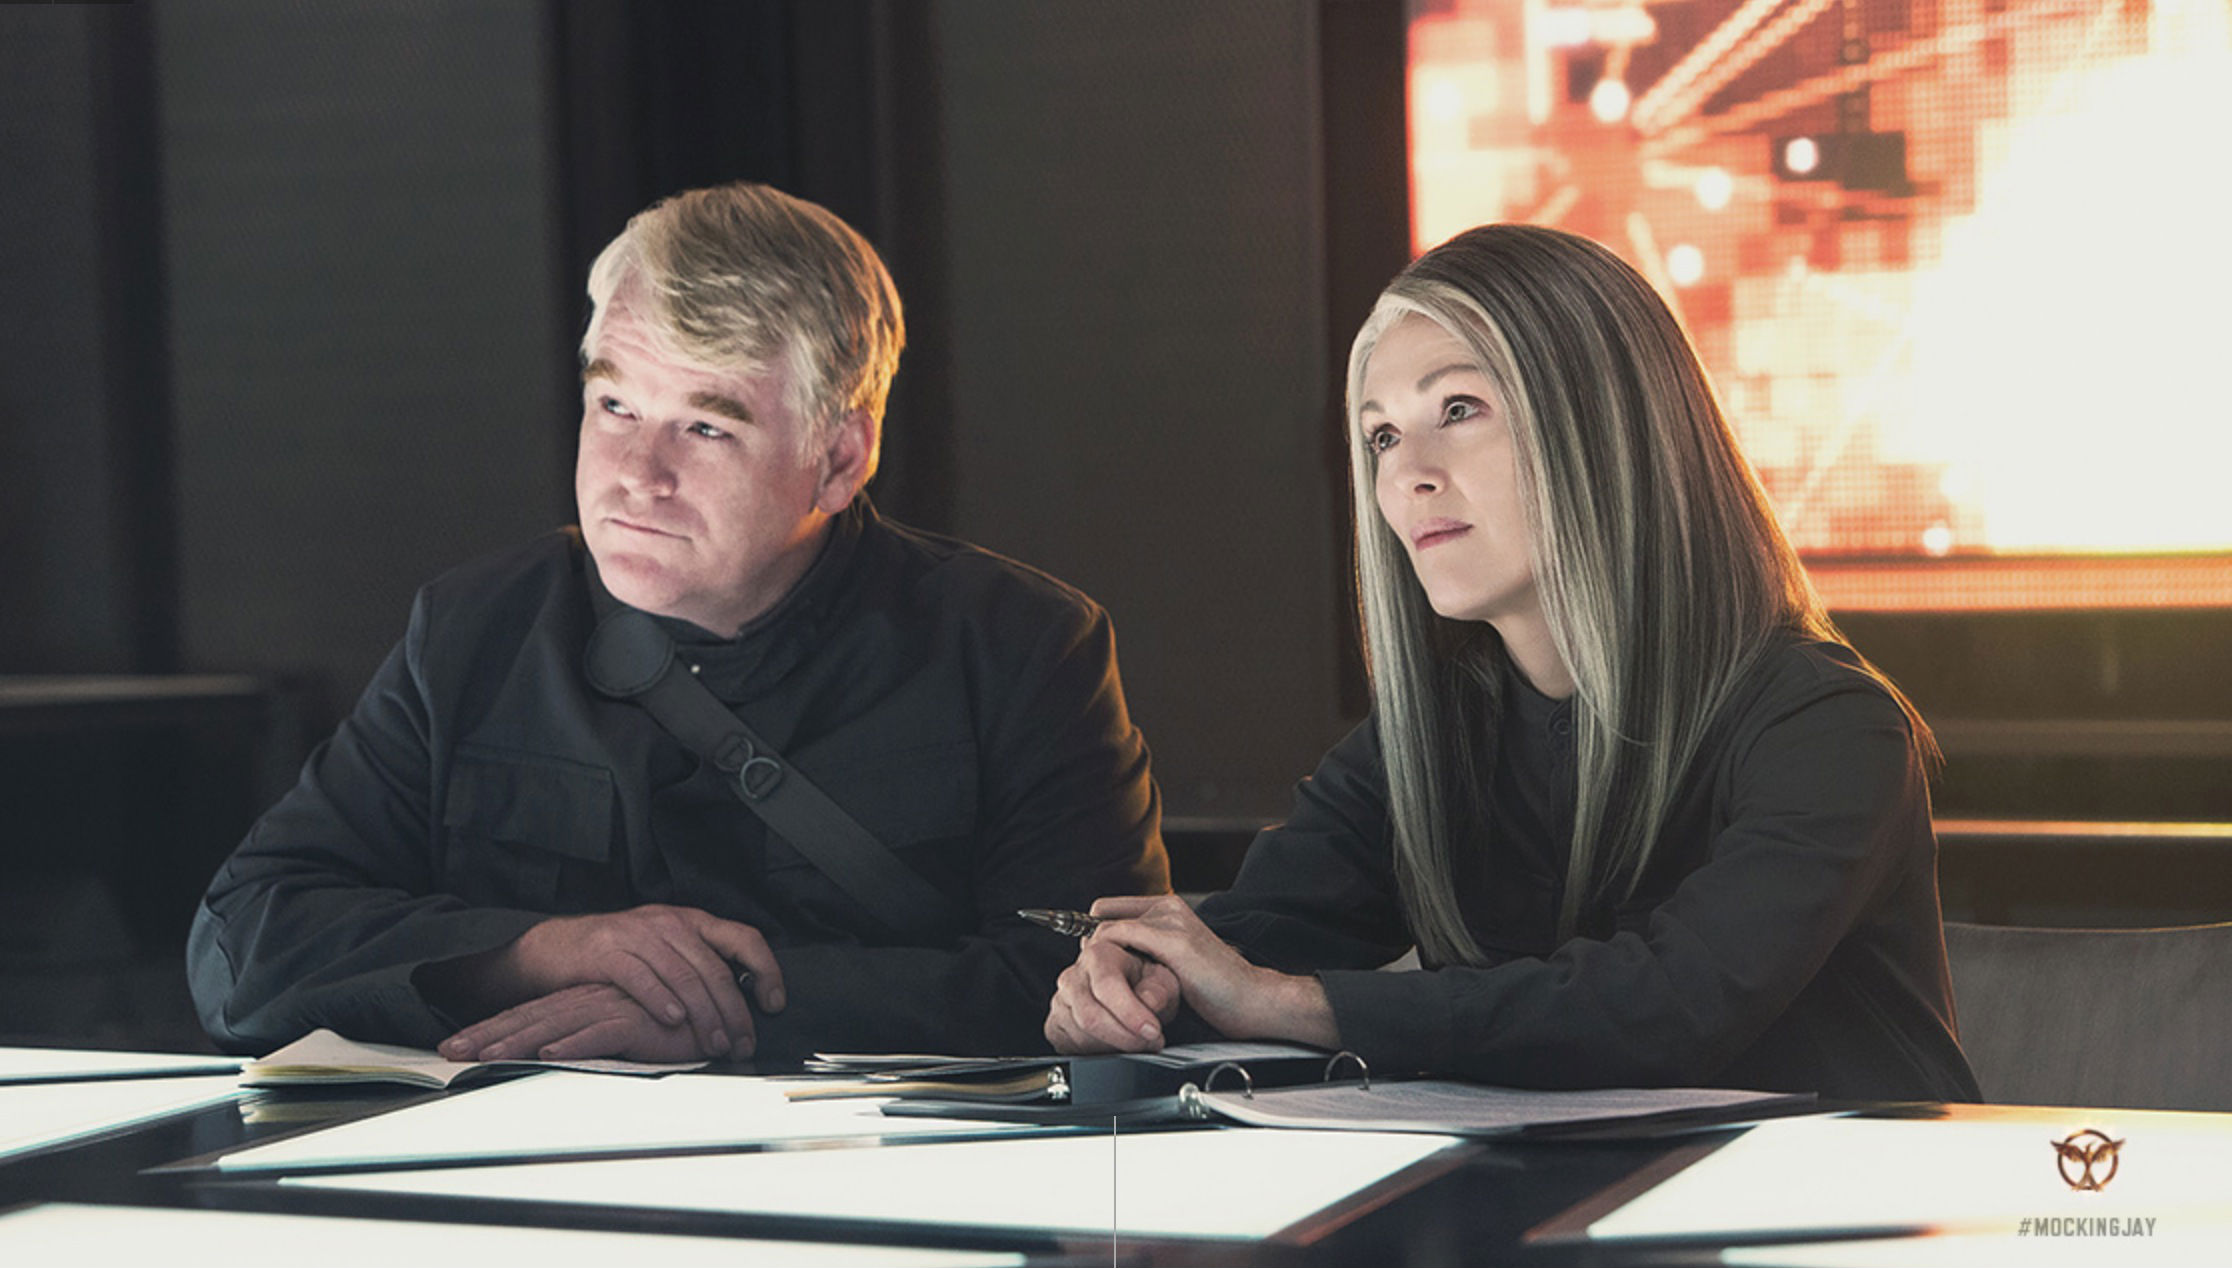 Mockingjay Part 1 Hoffman The Hunger Games: Mockingjay, Part 1 Reveals a Hot New Poster, First Look At Julianne Moore, And More